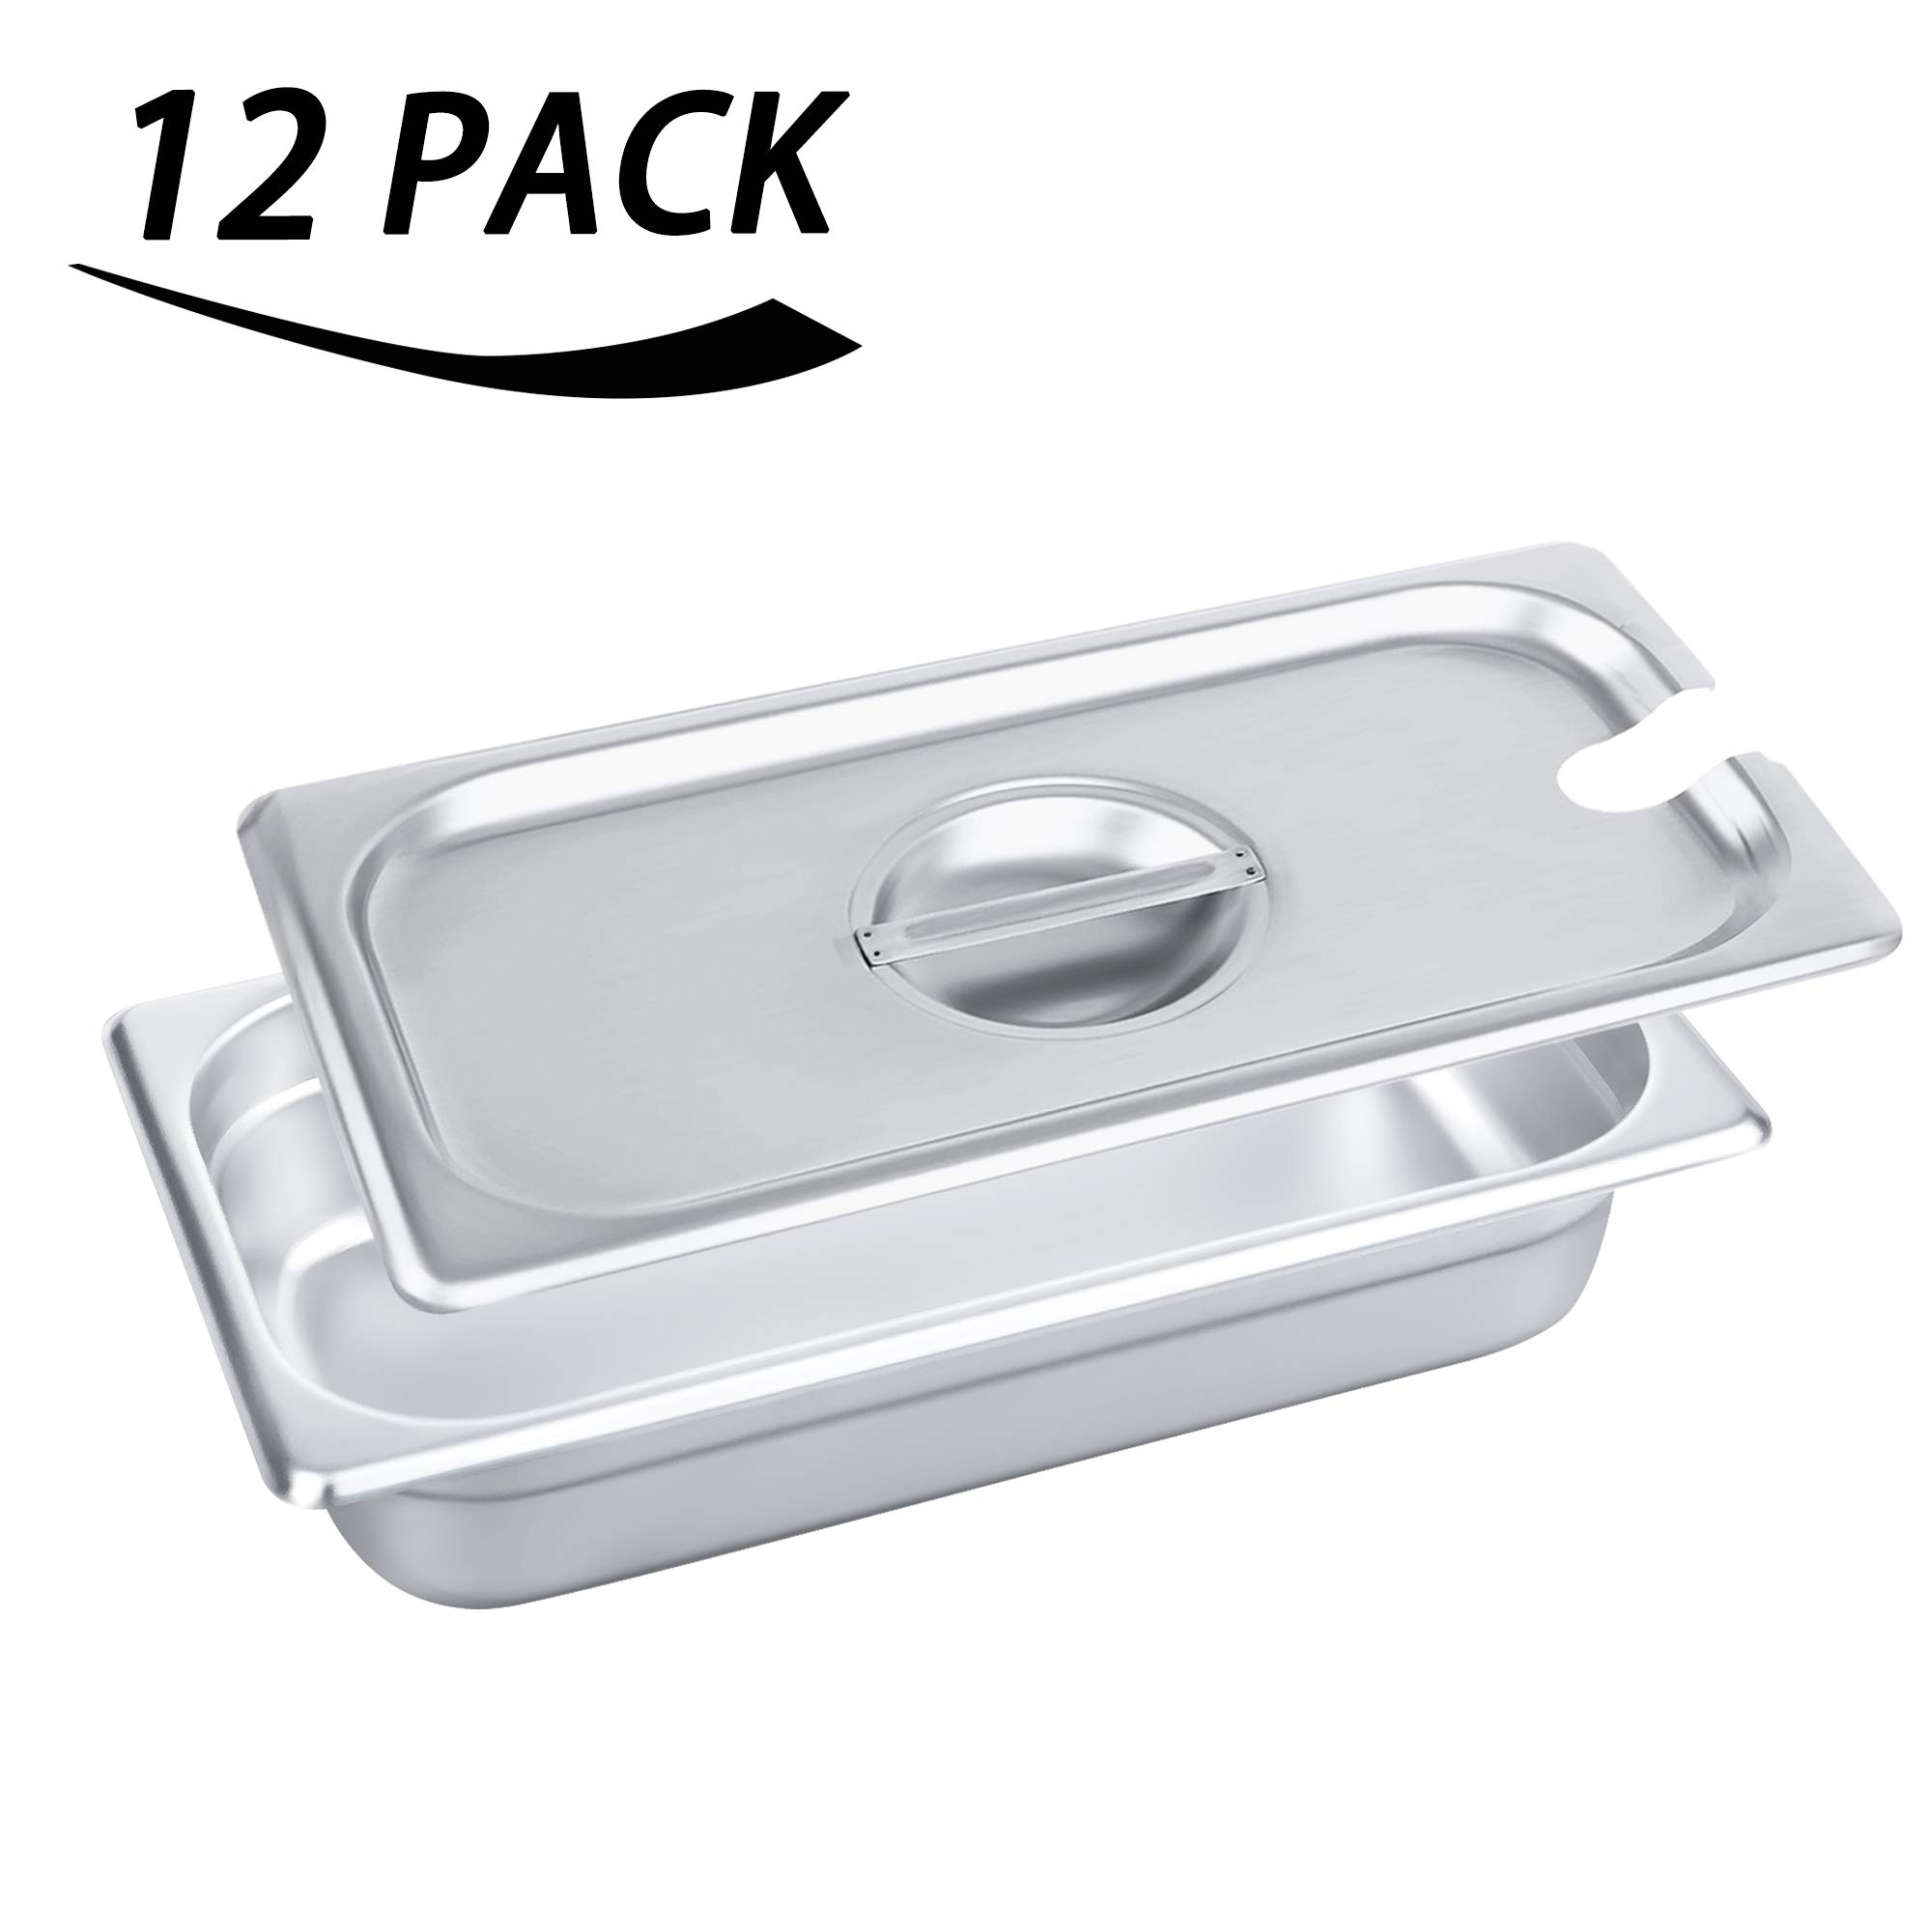 1/3 Size Stainless Steel Slotted Steam Table Pan Cover, Kitma Pan Lids, Non-Stick Surface, Lid for 1/3 Size Steam Pans with Handle - 12 Pack